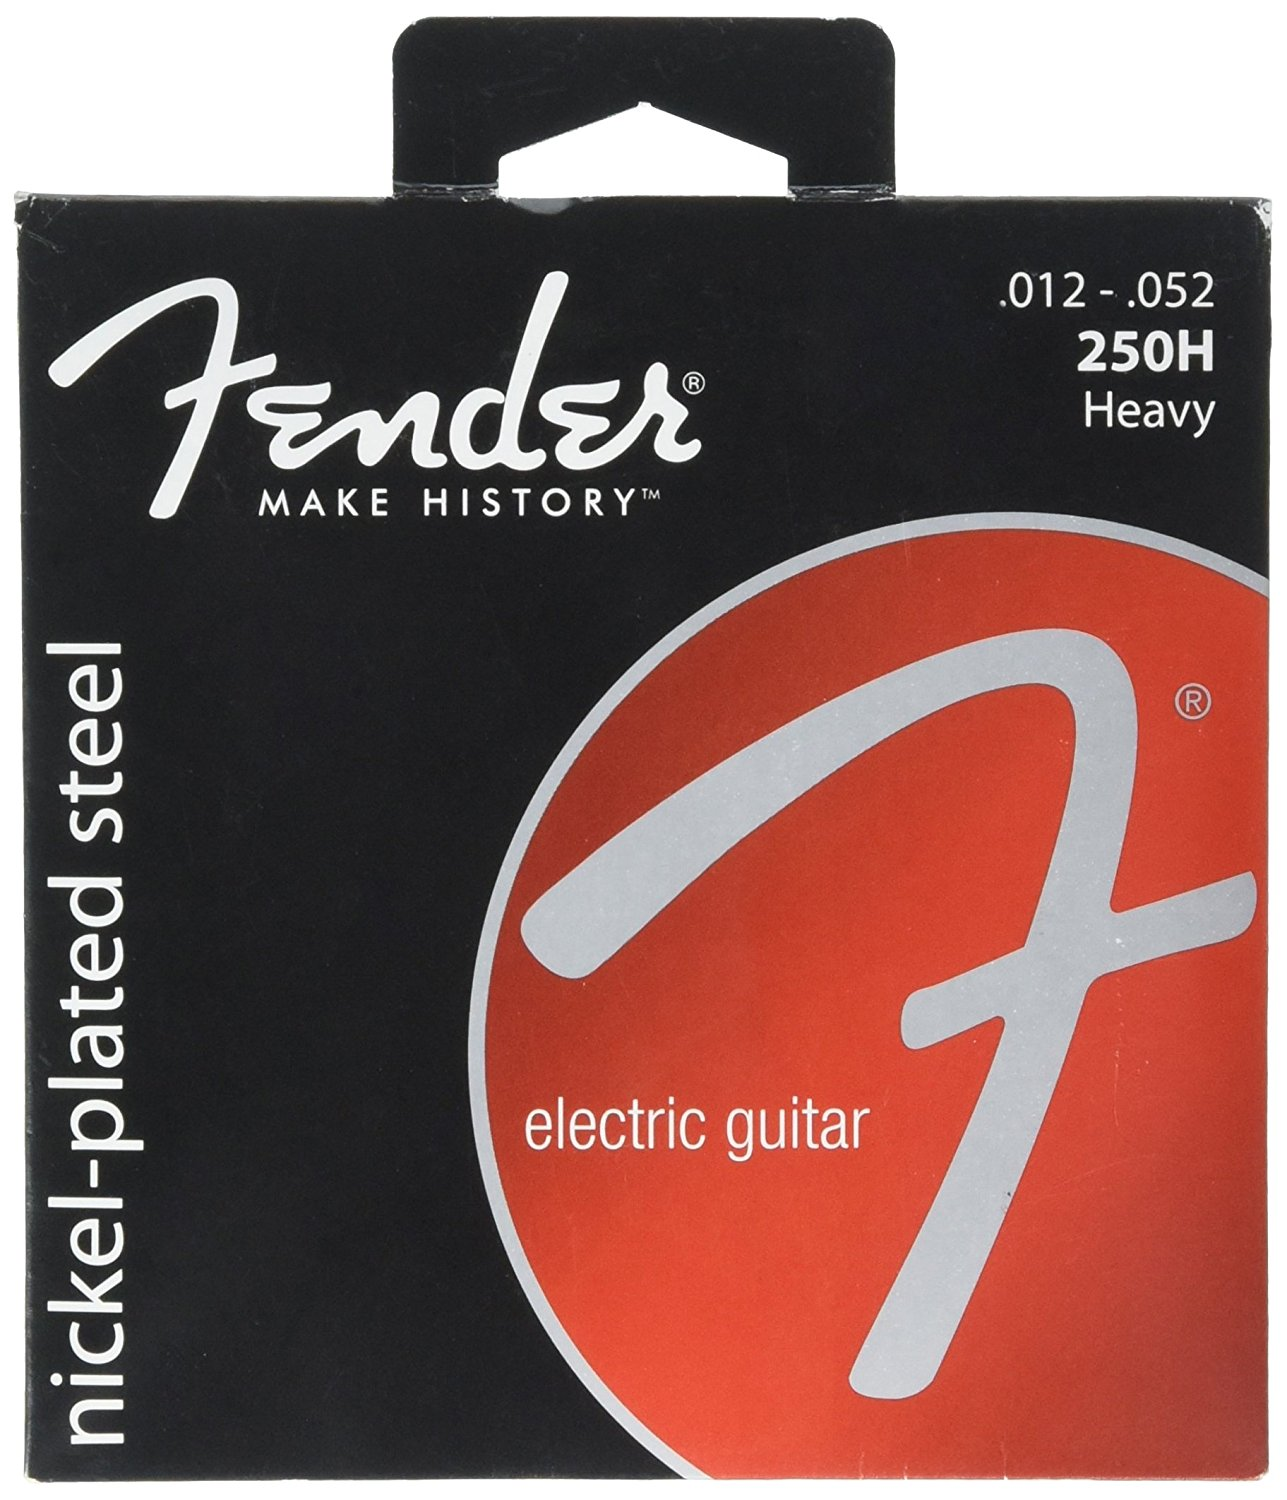 pare prices on fender super online shopping low price